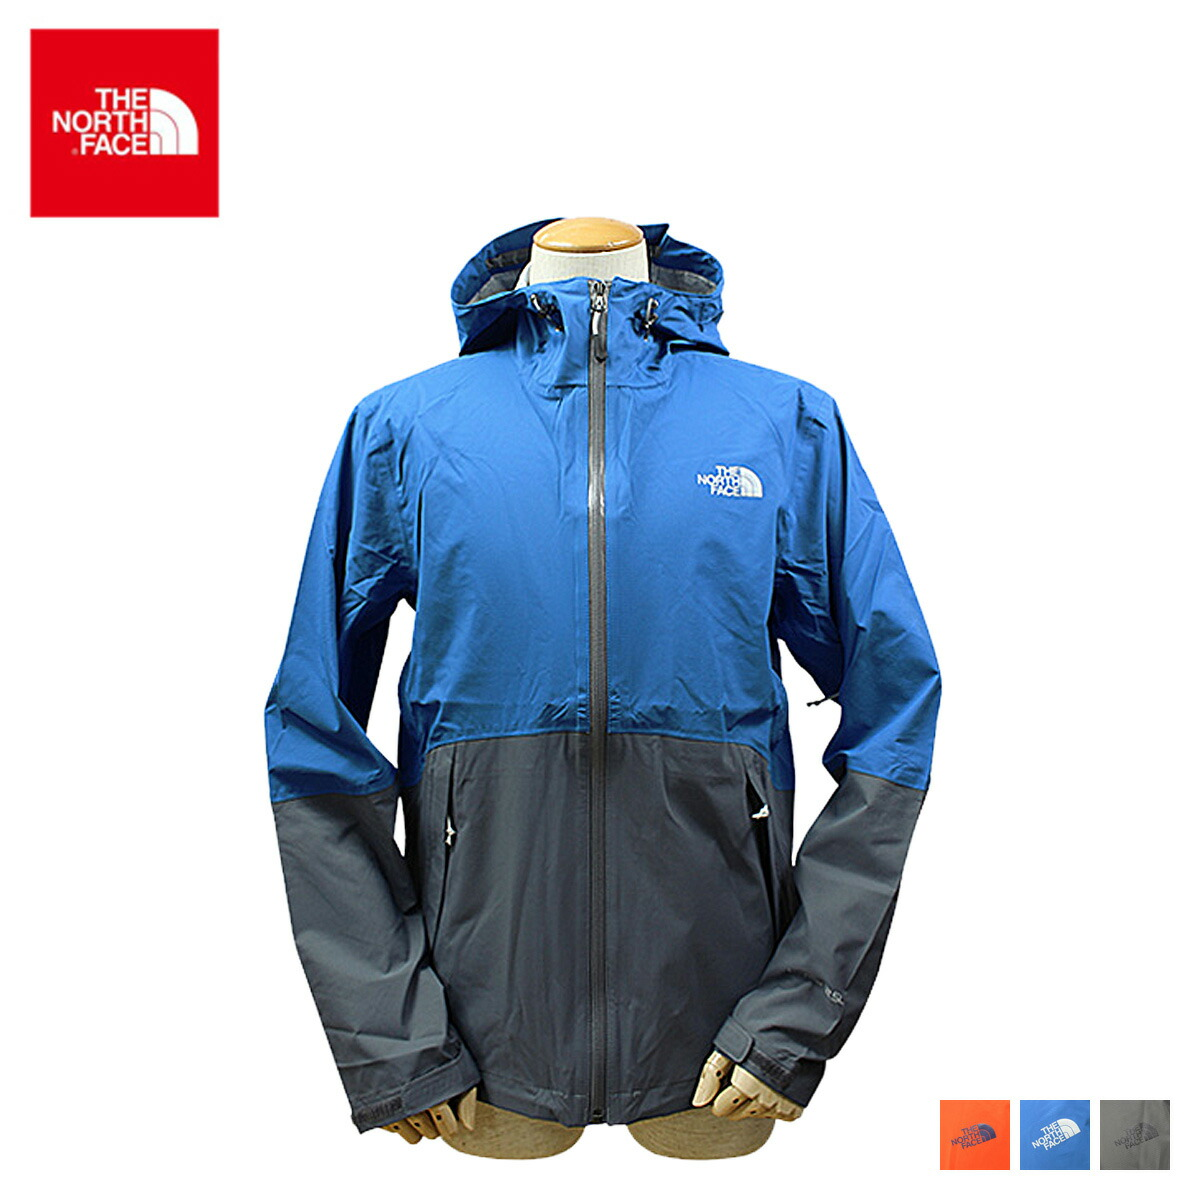 ALLSPORTS | Rakuten Global Market: The north face THE NORTH FACE